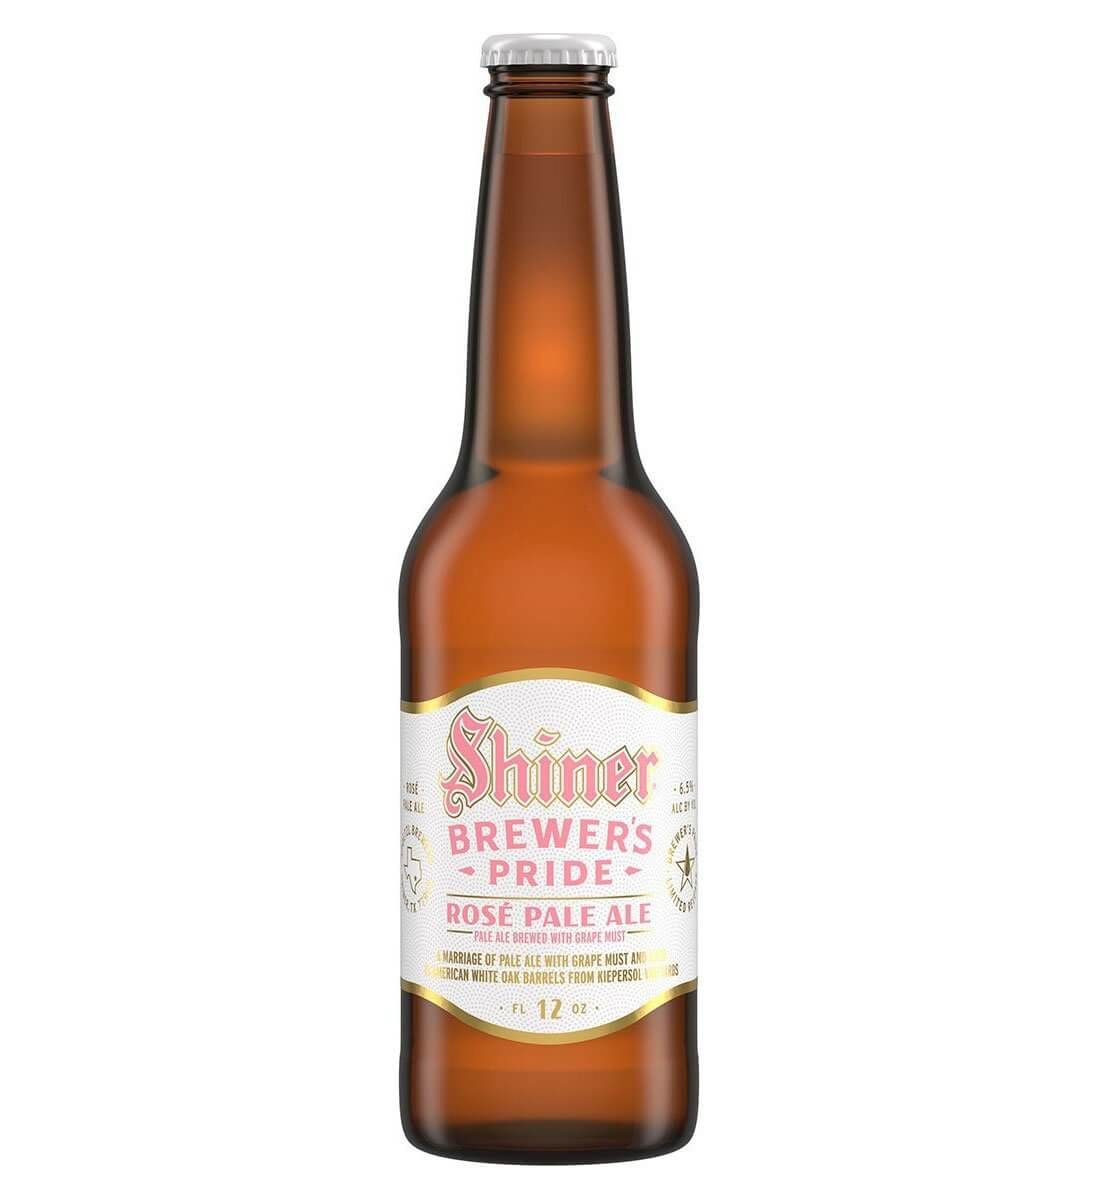 Shiner Brewery Brewer's Pride Rosé Pale Ale, bottle on white